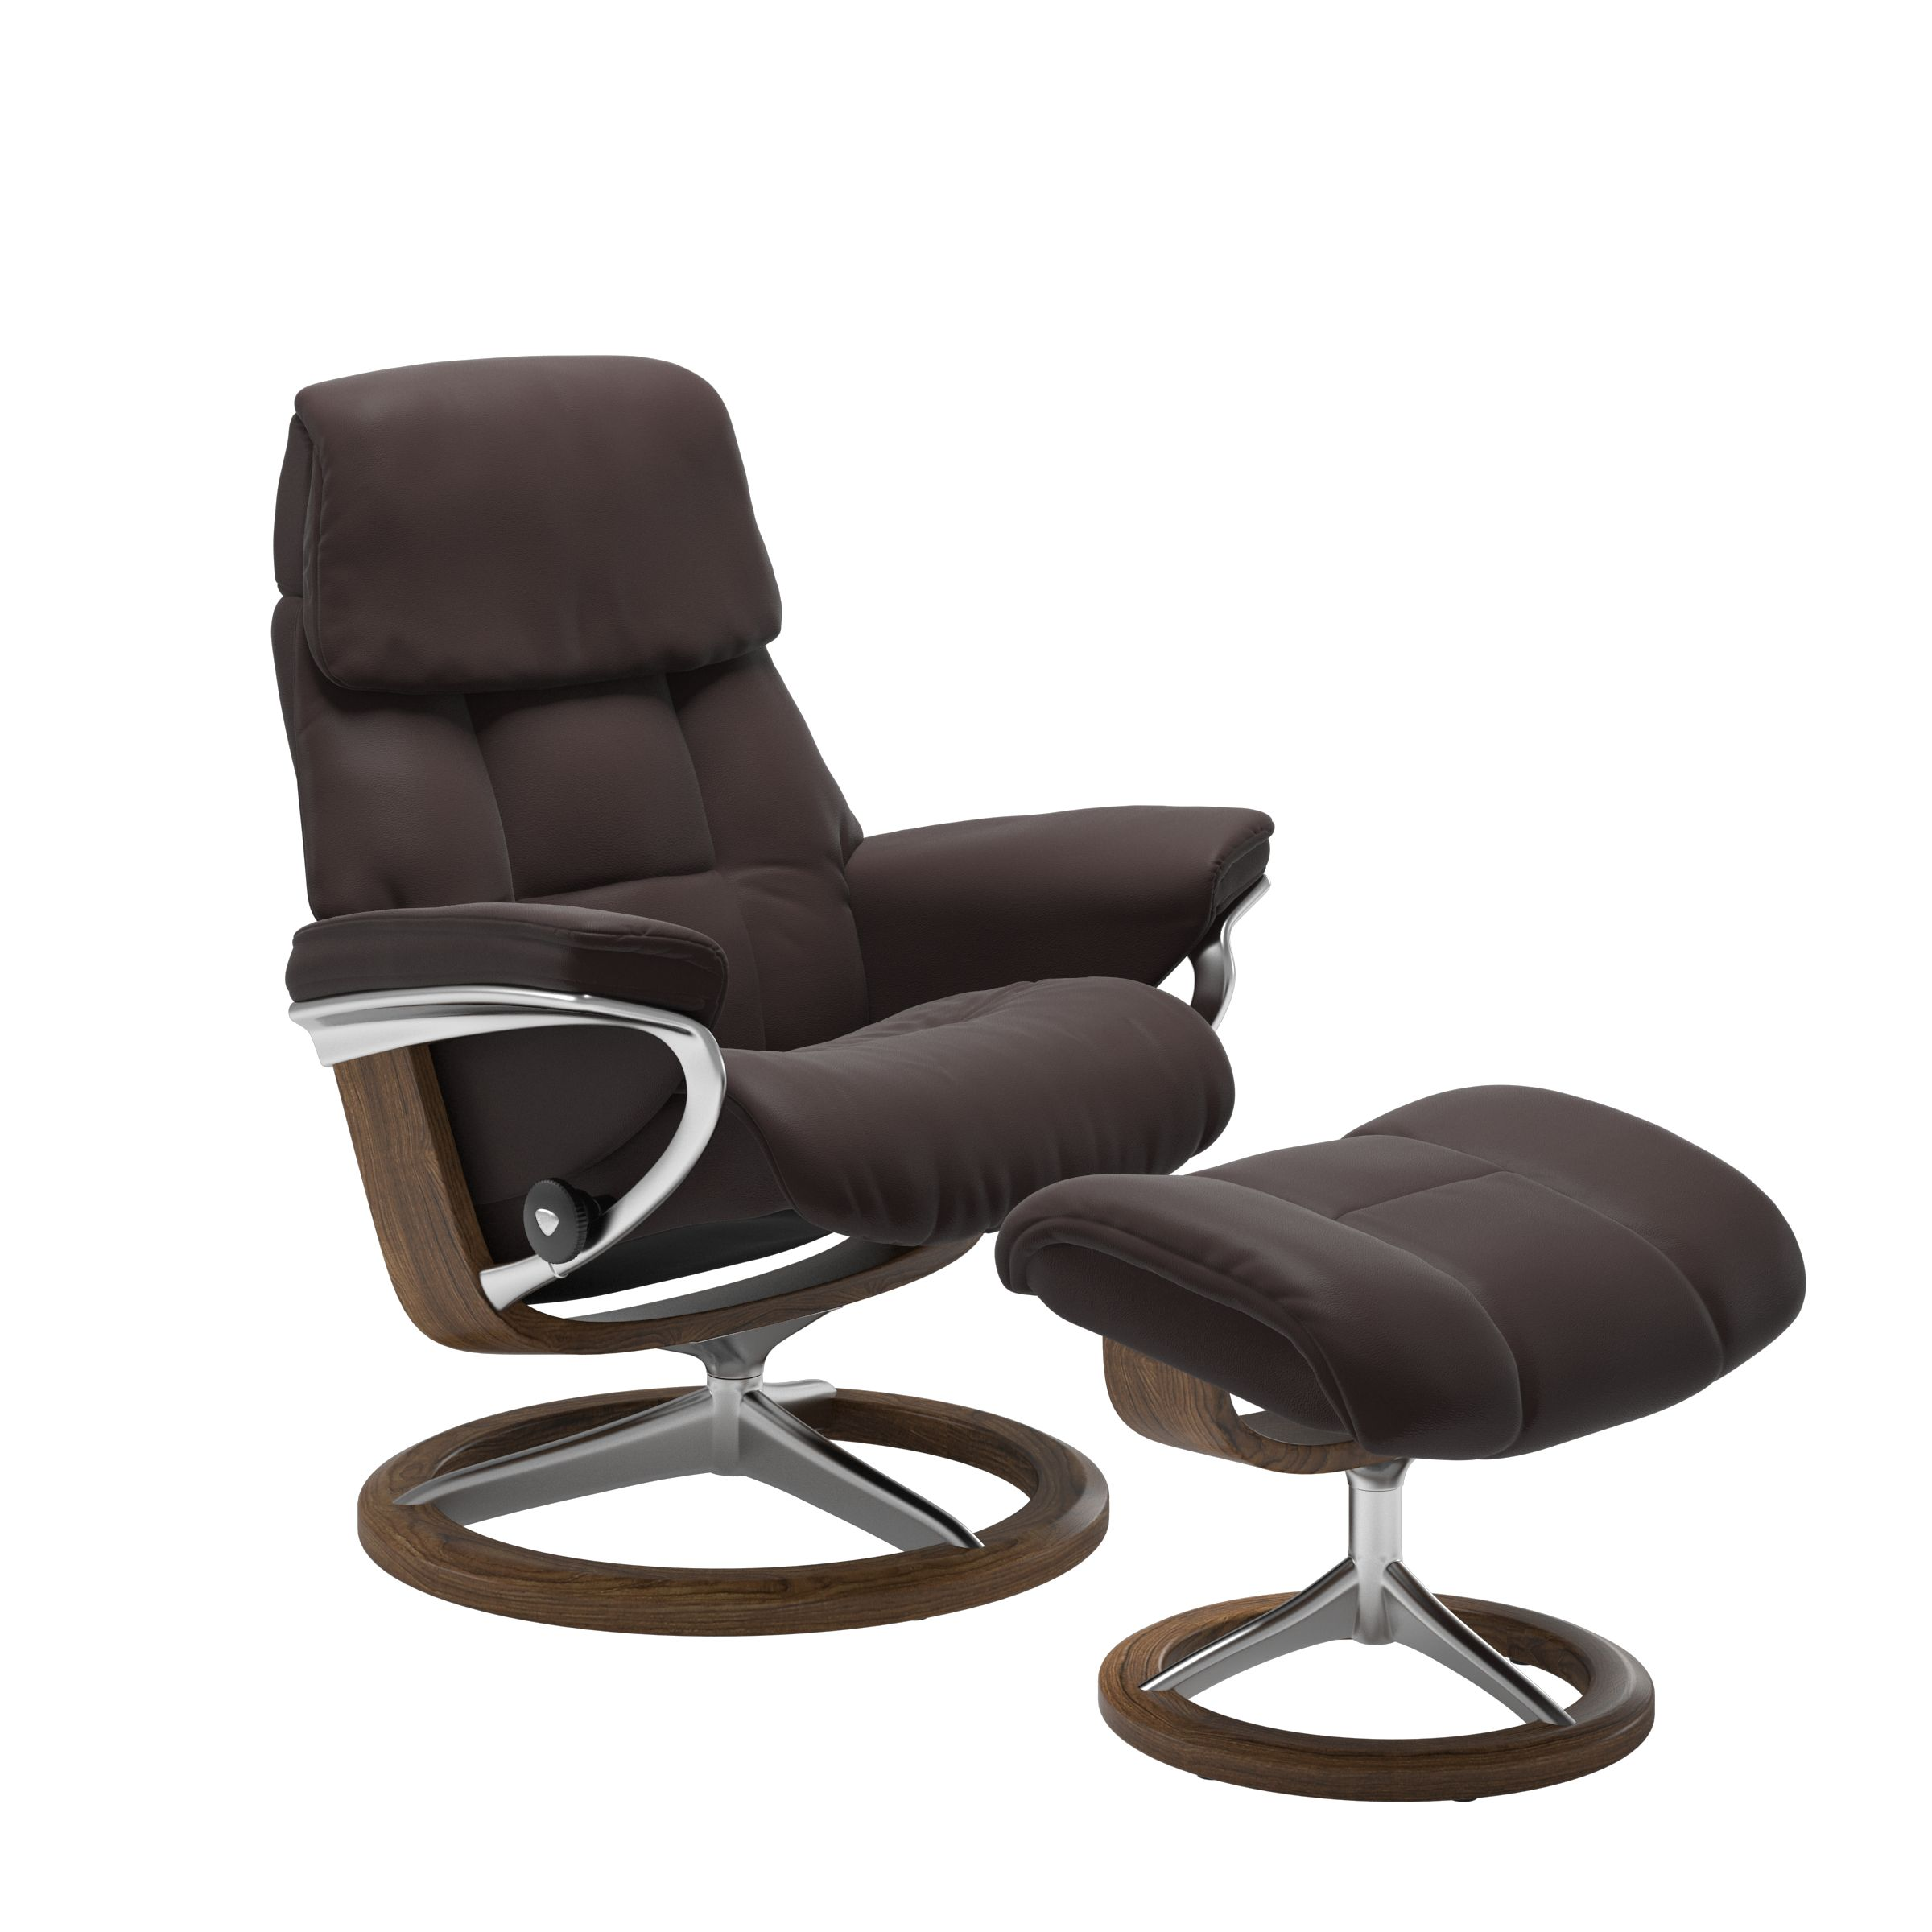 Stressless Nordic Legcomfort Stressless Ruby Design Your Own Recliner Stressless